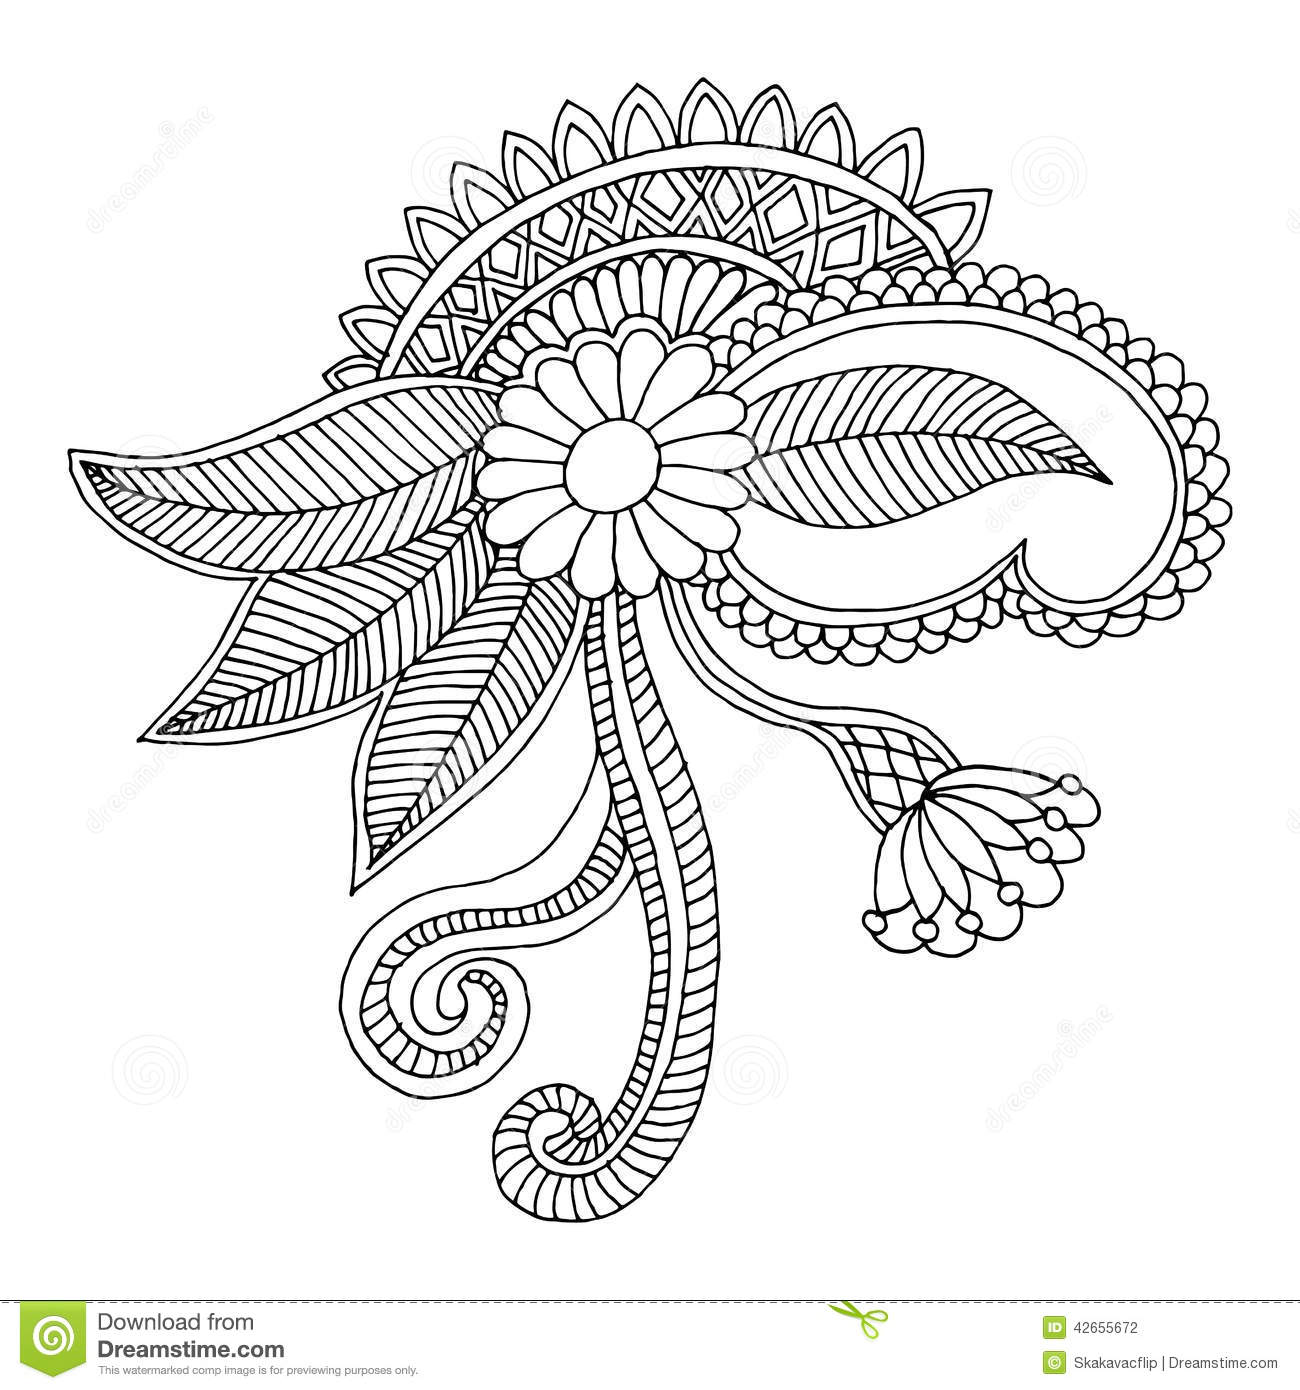 Embroidery Square Pattern Design Stock Illustration - Illustration ...